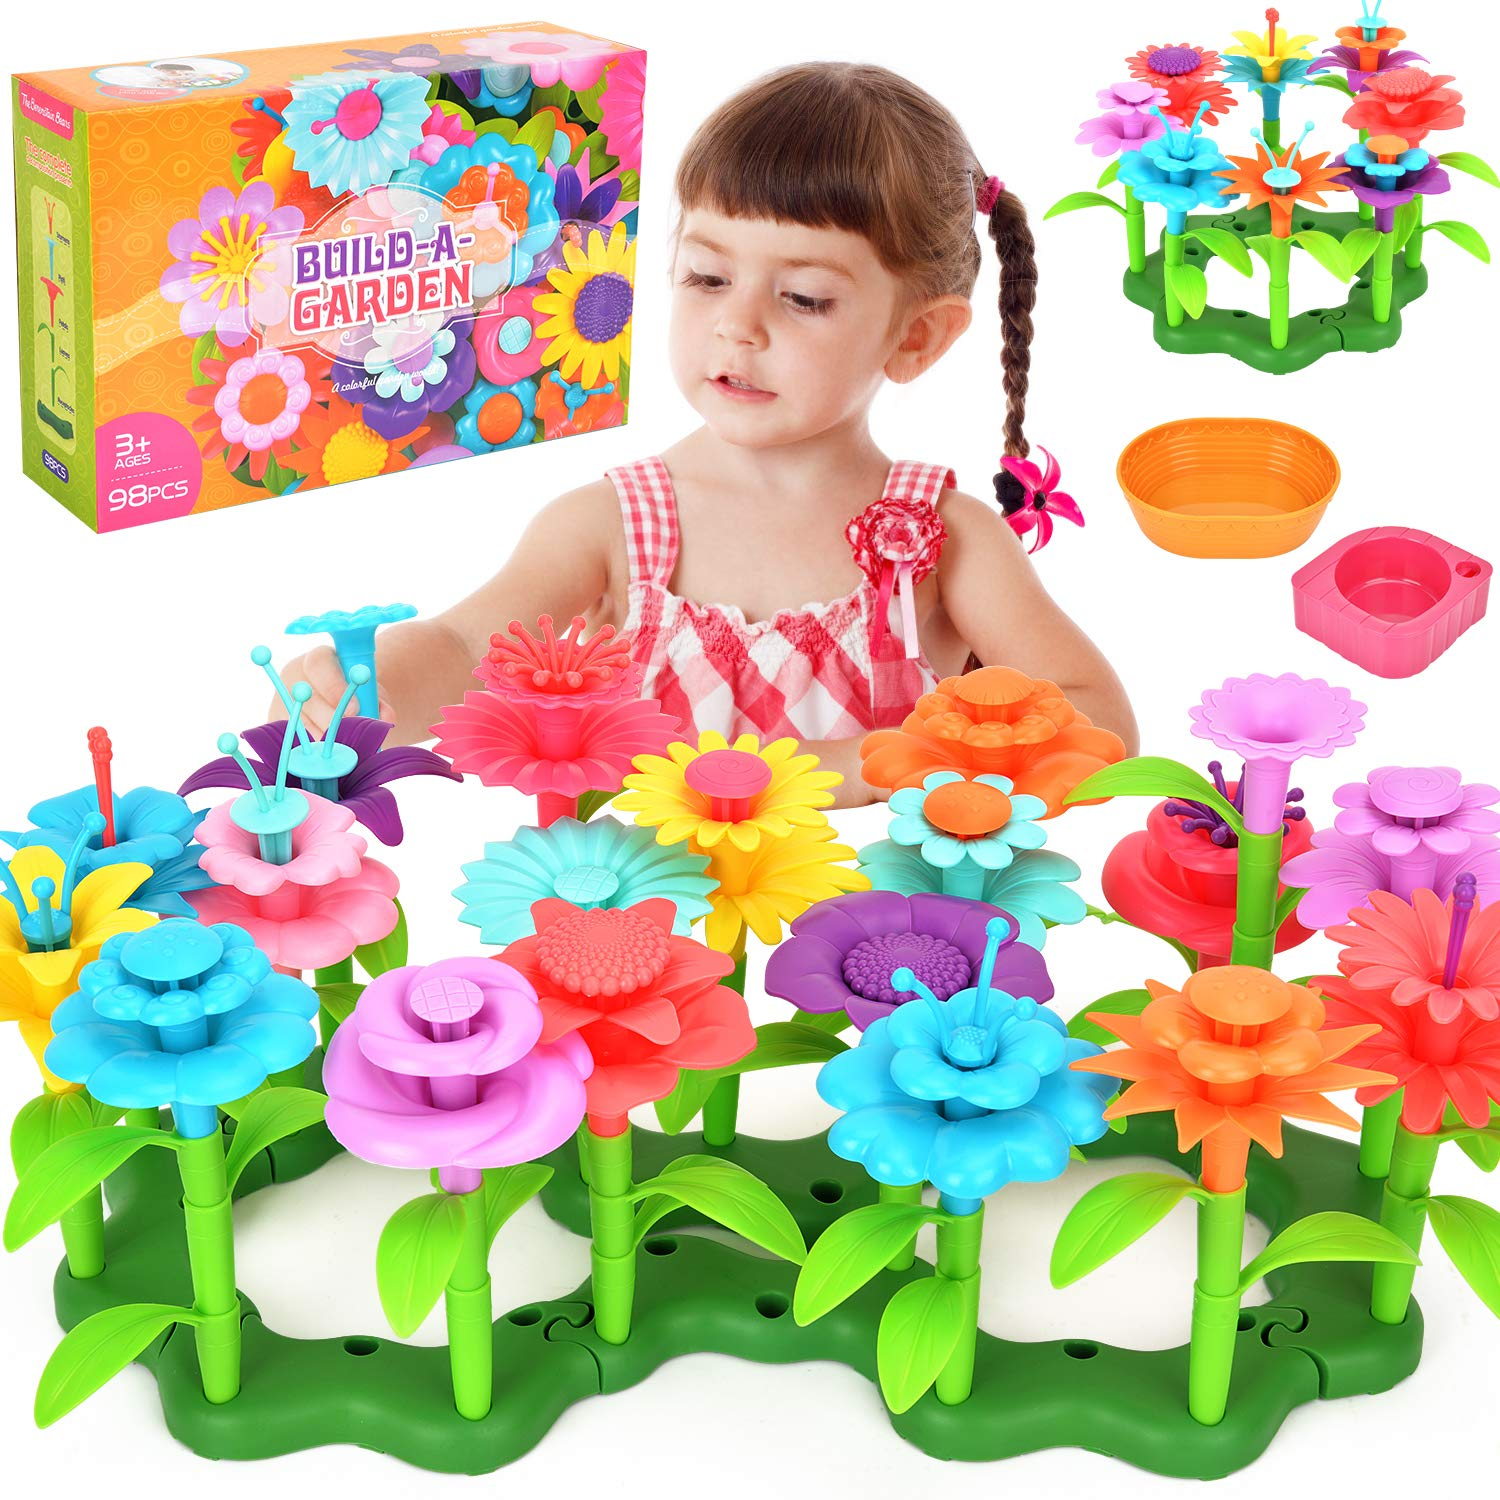 Victostar Flower Building Toy Garden Building Blocks Toy Set for Kids, 98 PCS Educational Toy Creative Playset for Age 4,5,6,7 Year Old Gifts